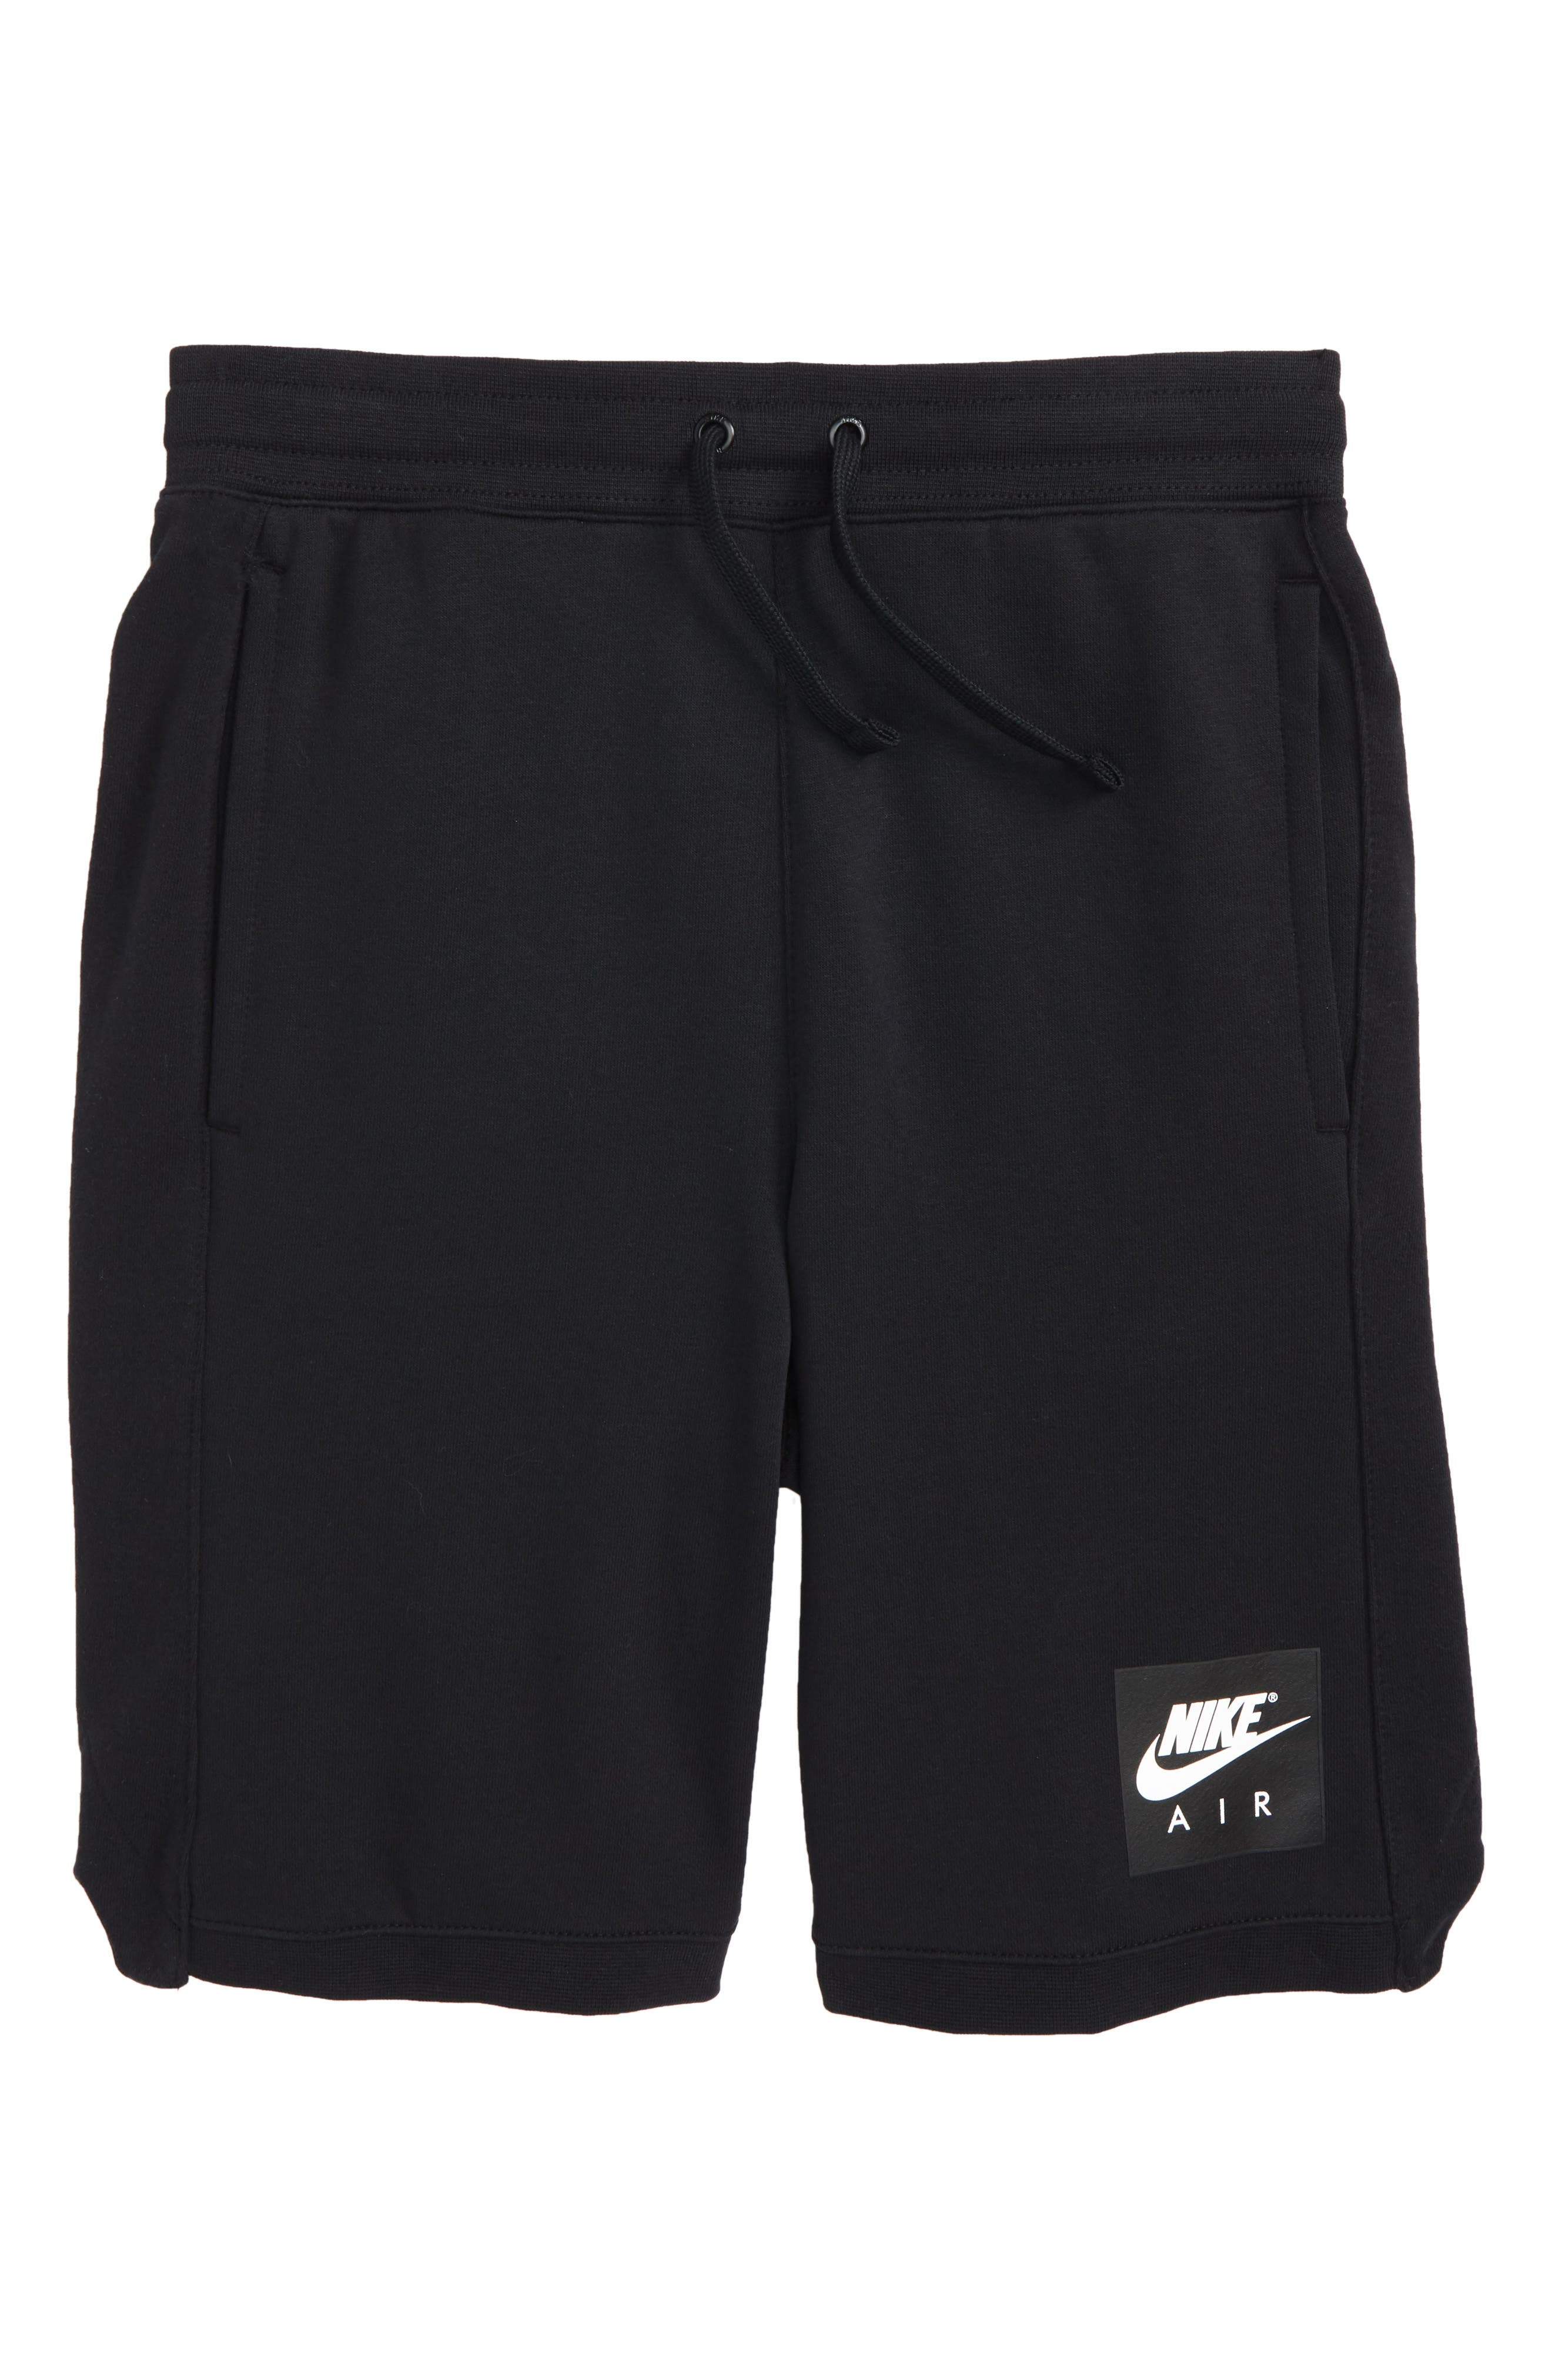 Air Shorts,                         Main,                         color, 010